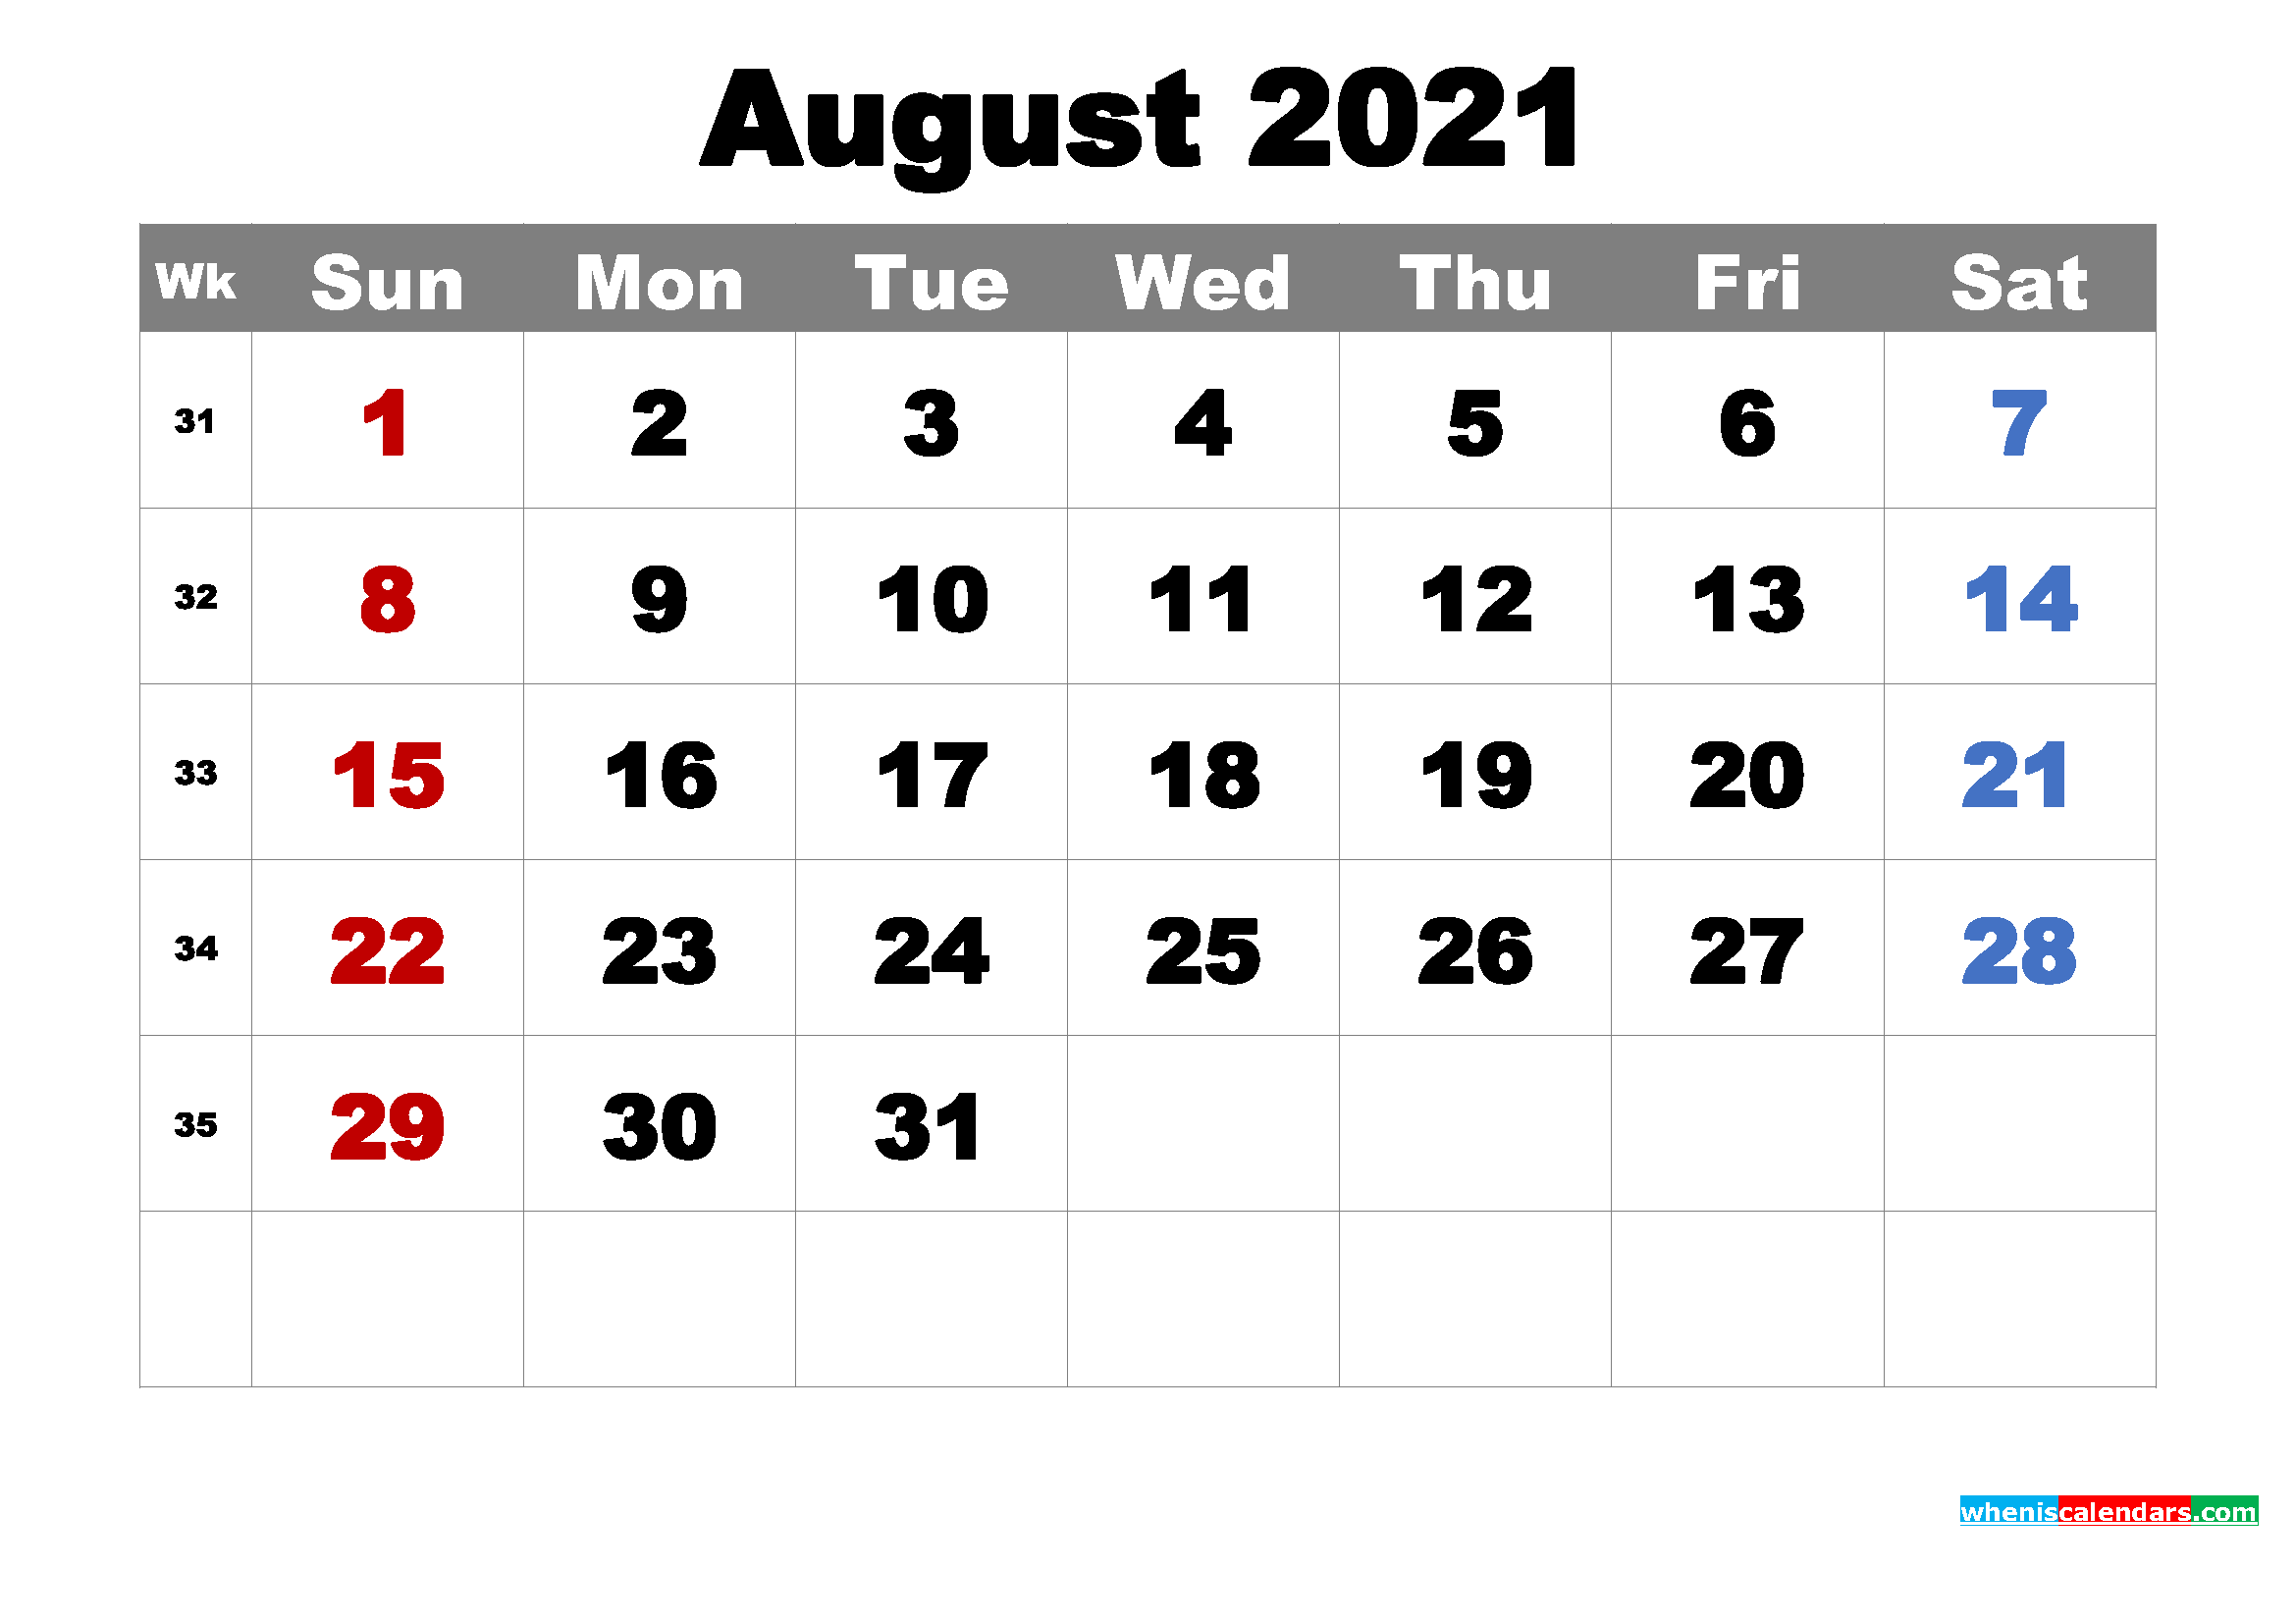 Printable August 2021 Calendar by Month